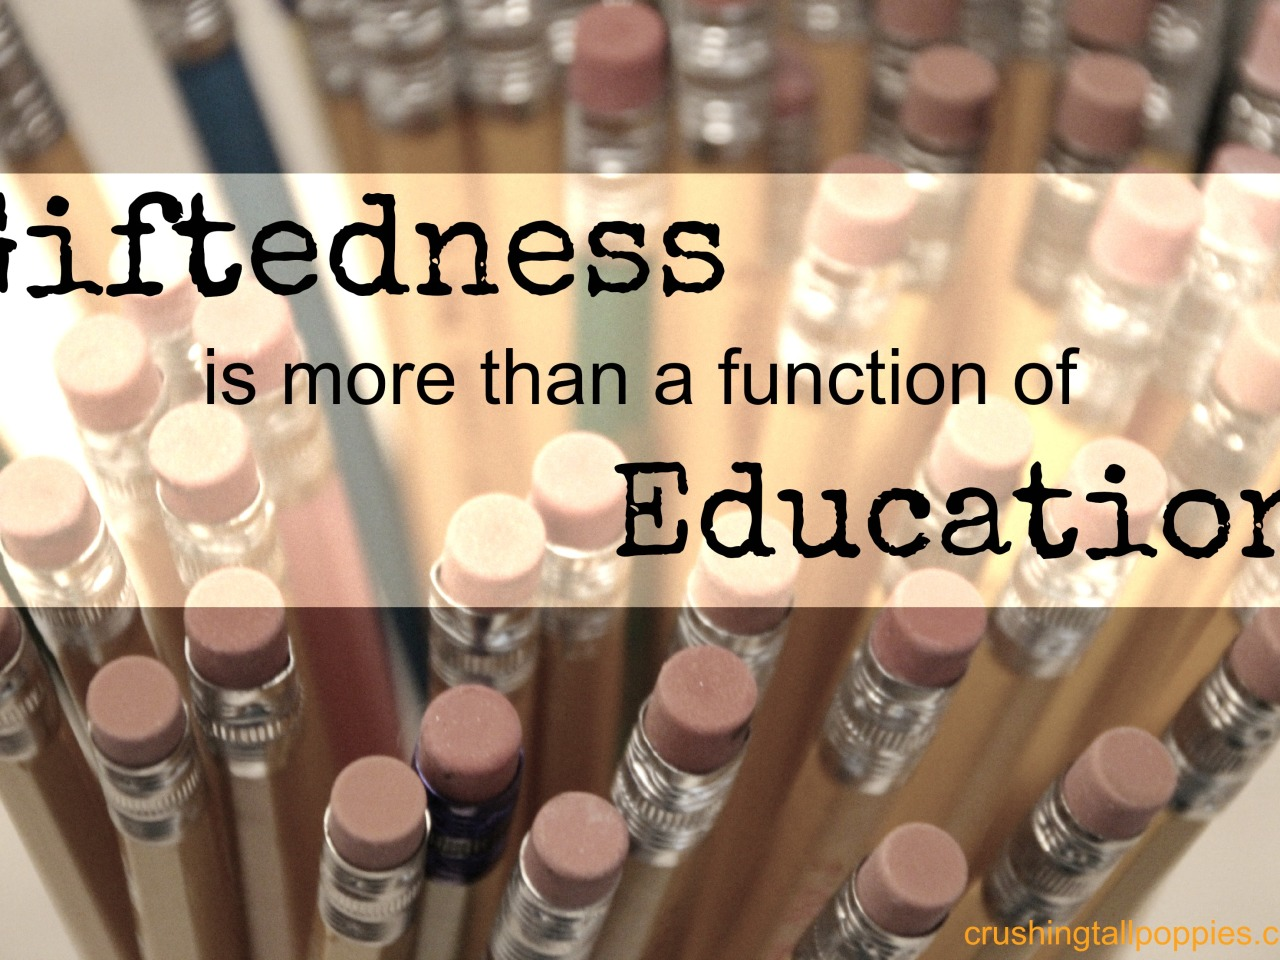 Giftedness is more than a function of Education